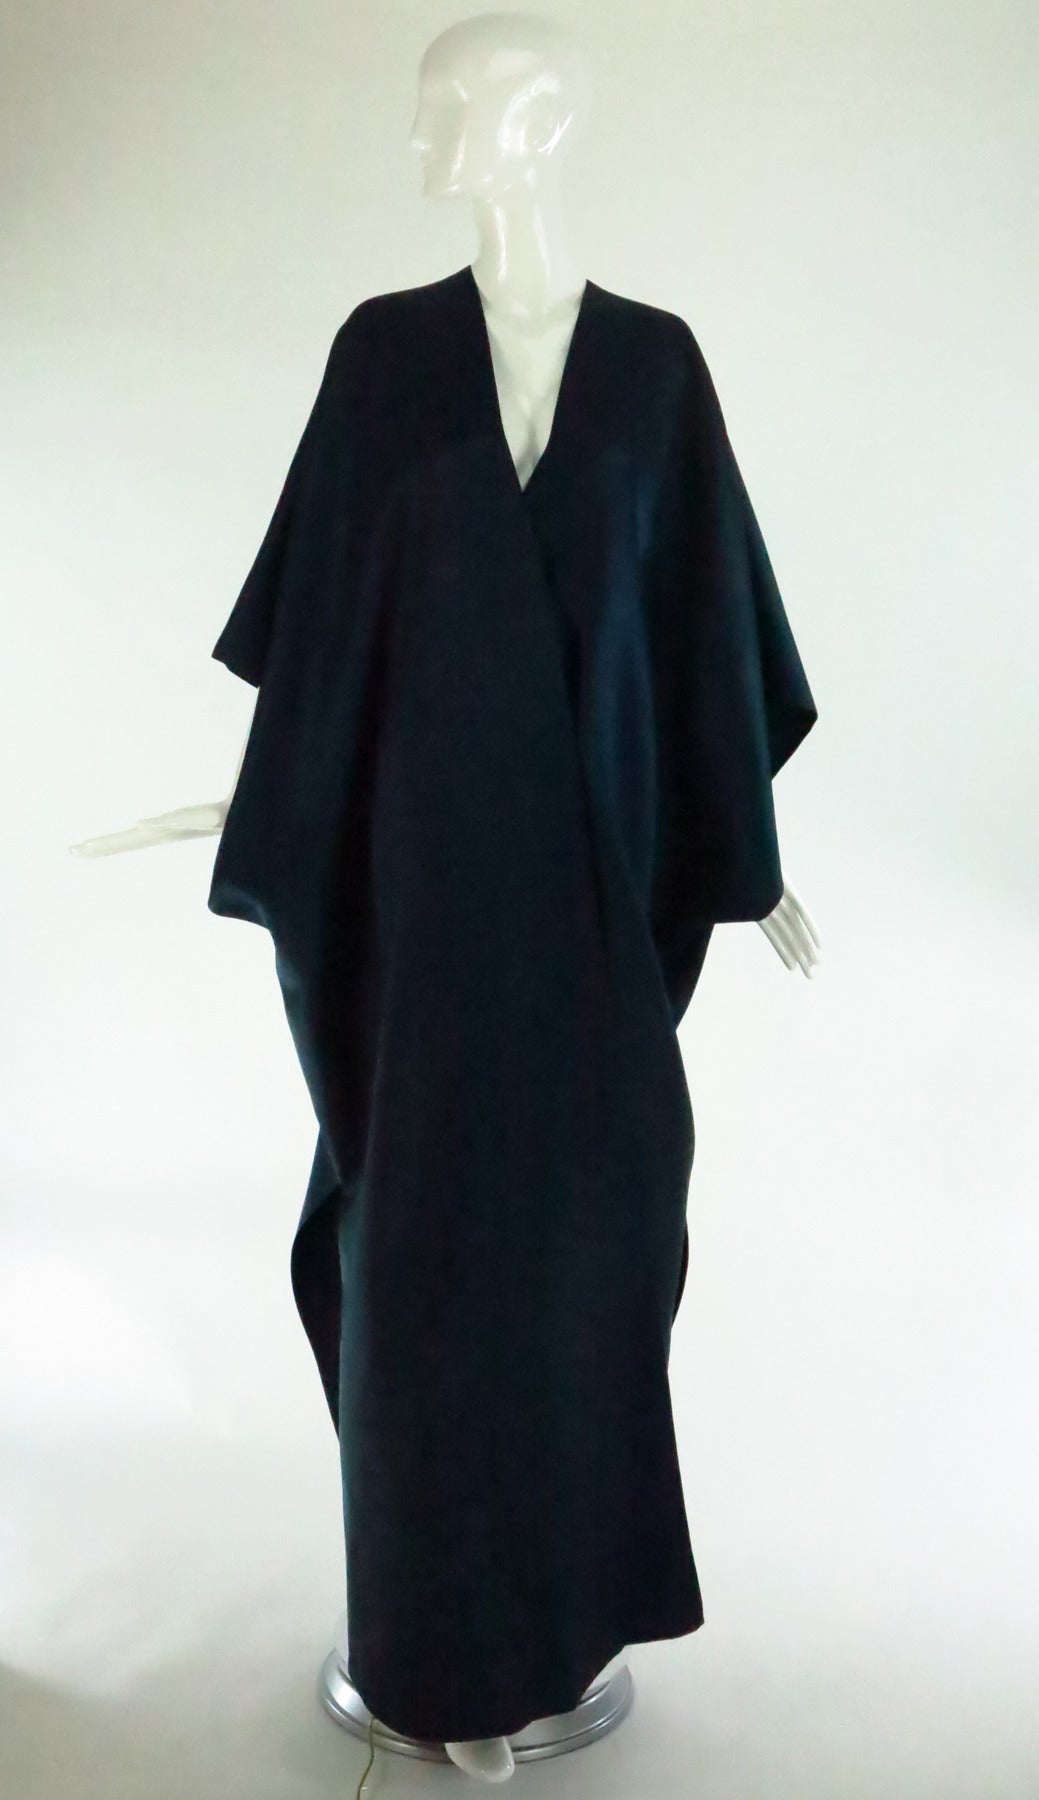 Stavropoulos was known for his  simple and clean line design, the clothing spoke for itself with the elegance it conveyed and in his time he had a loyal following Elizabeth Taylor being one...An evening coat of deep teal blue silk twill is a